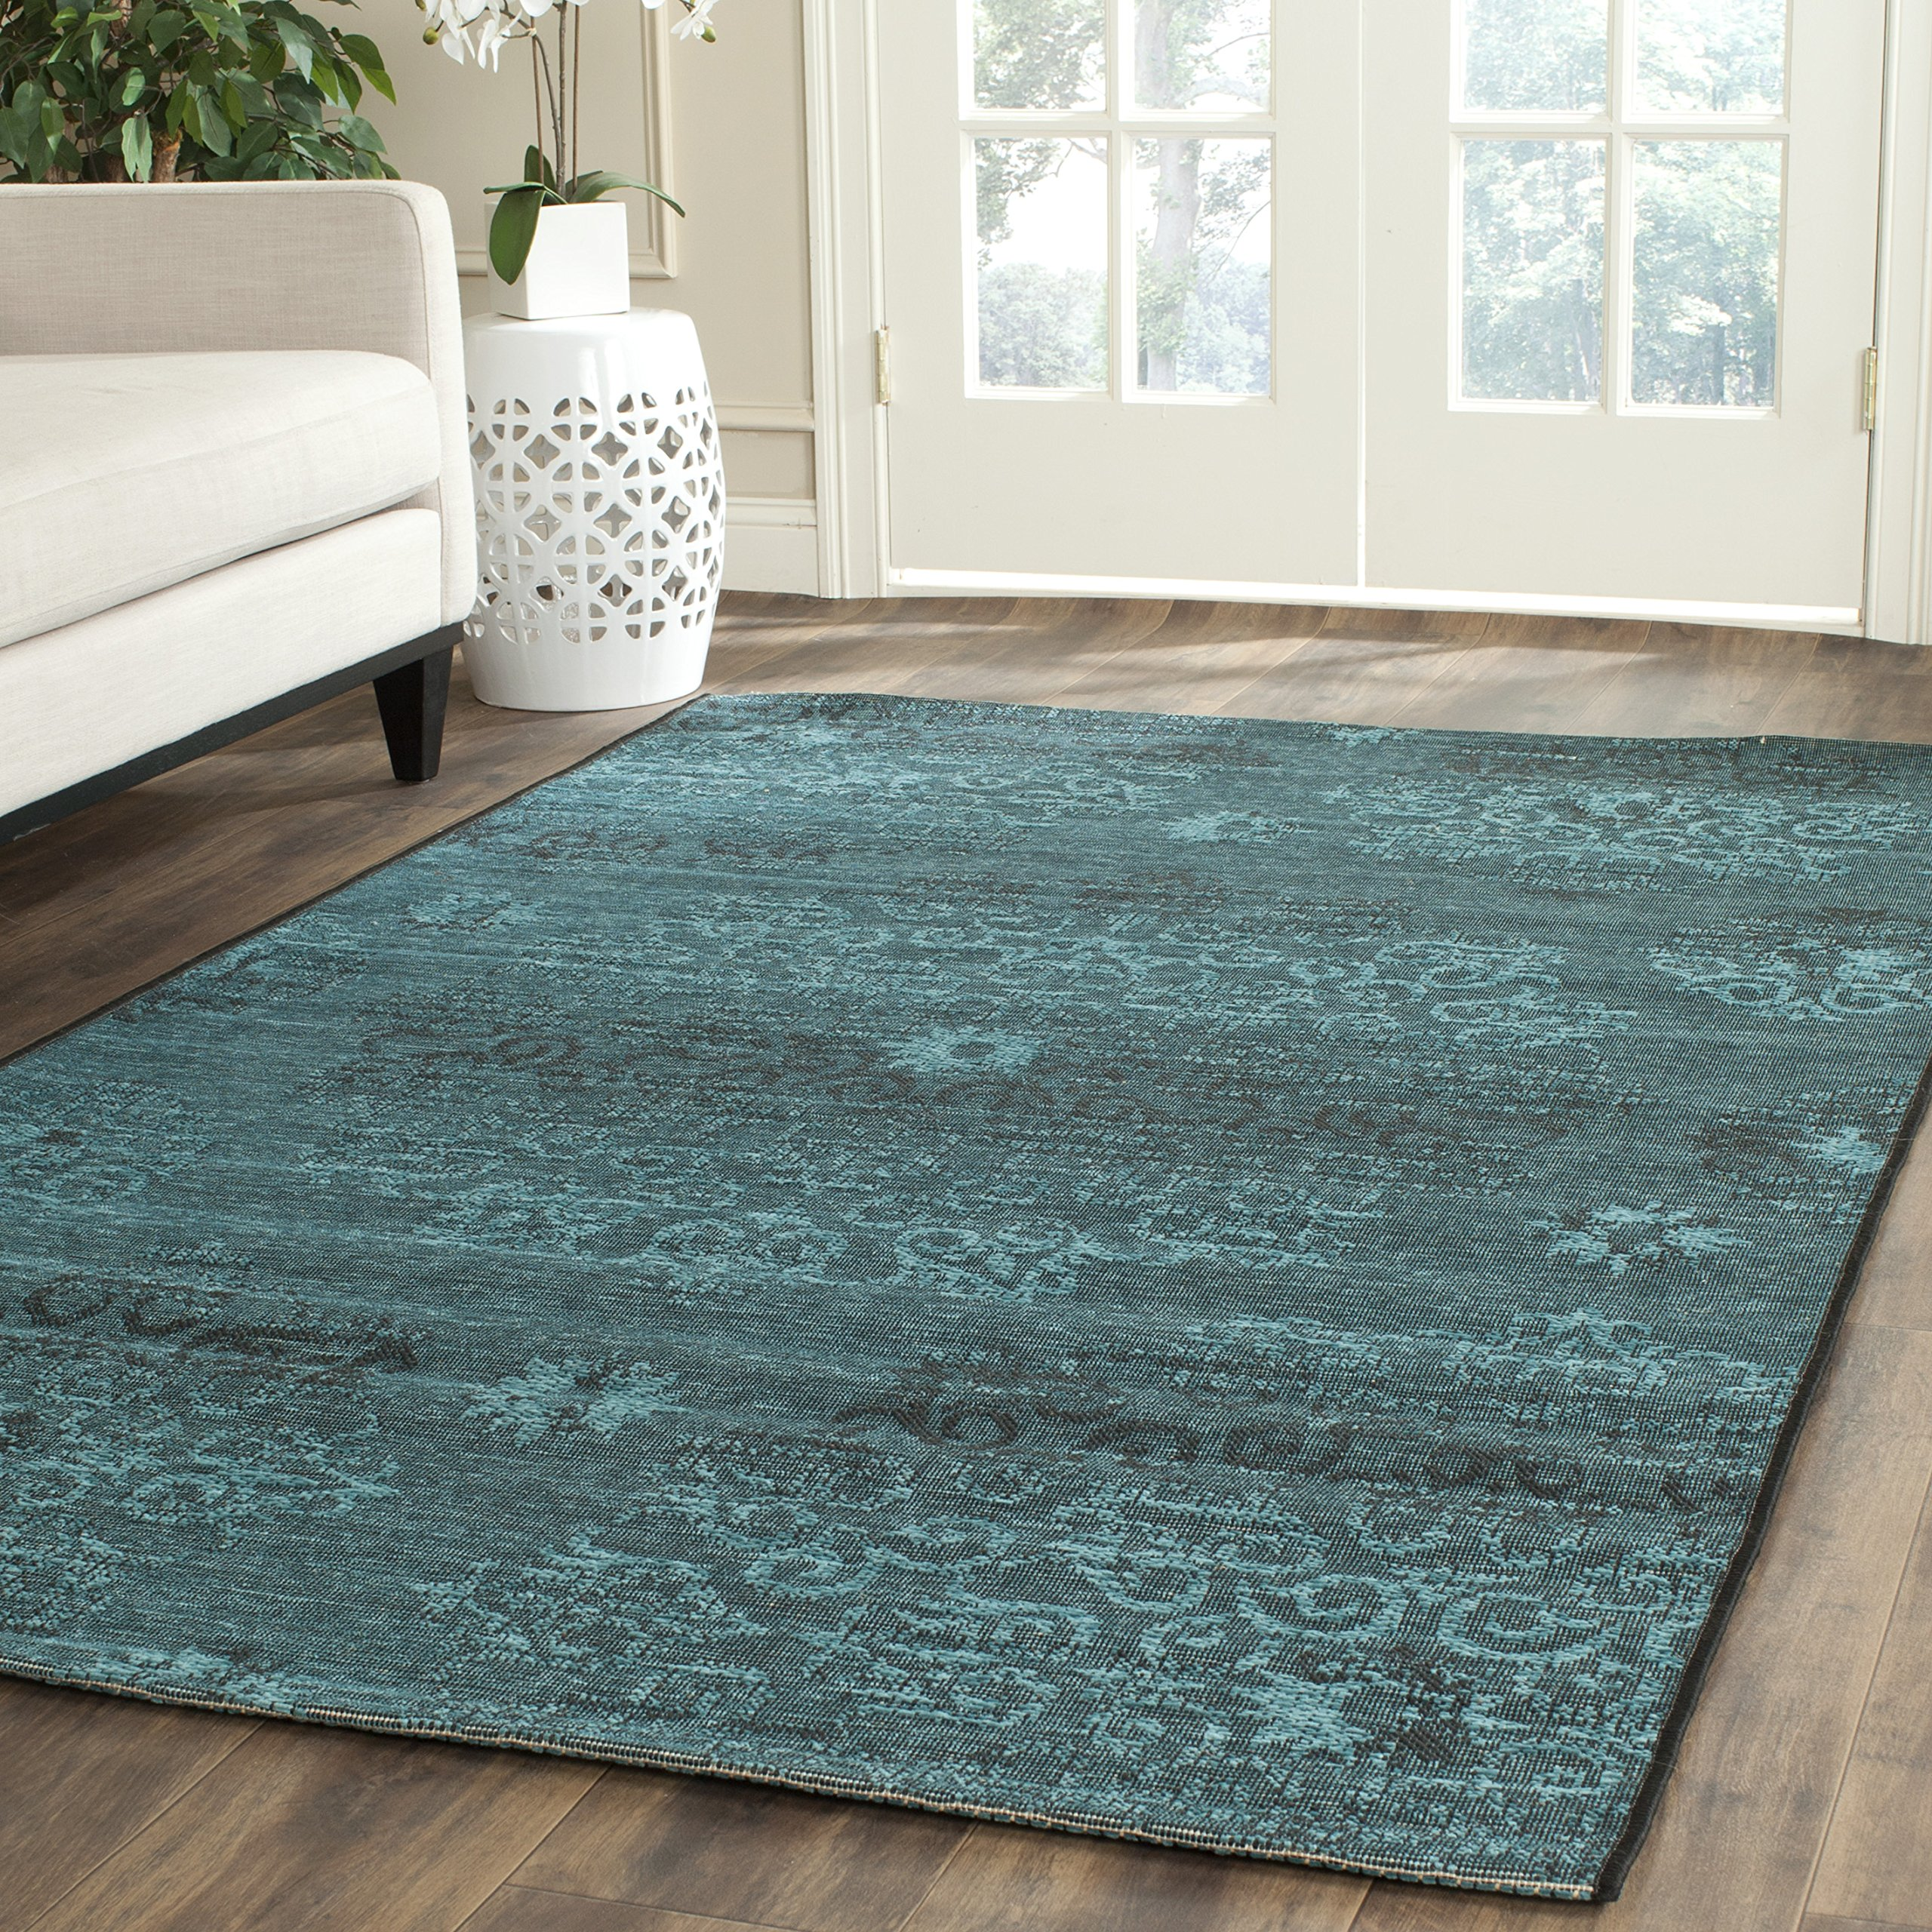 Safavieh Palazzo Collection PAL129-56C4 Black and Turquoise Area Rug (8' x 11') by Safavieh